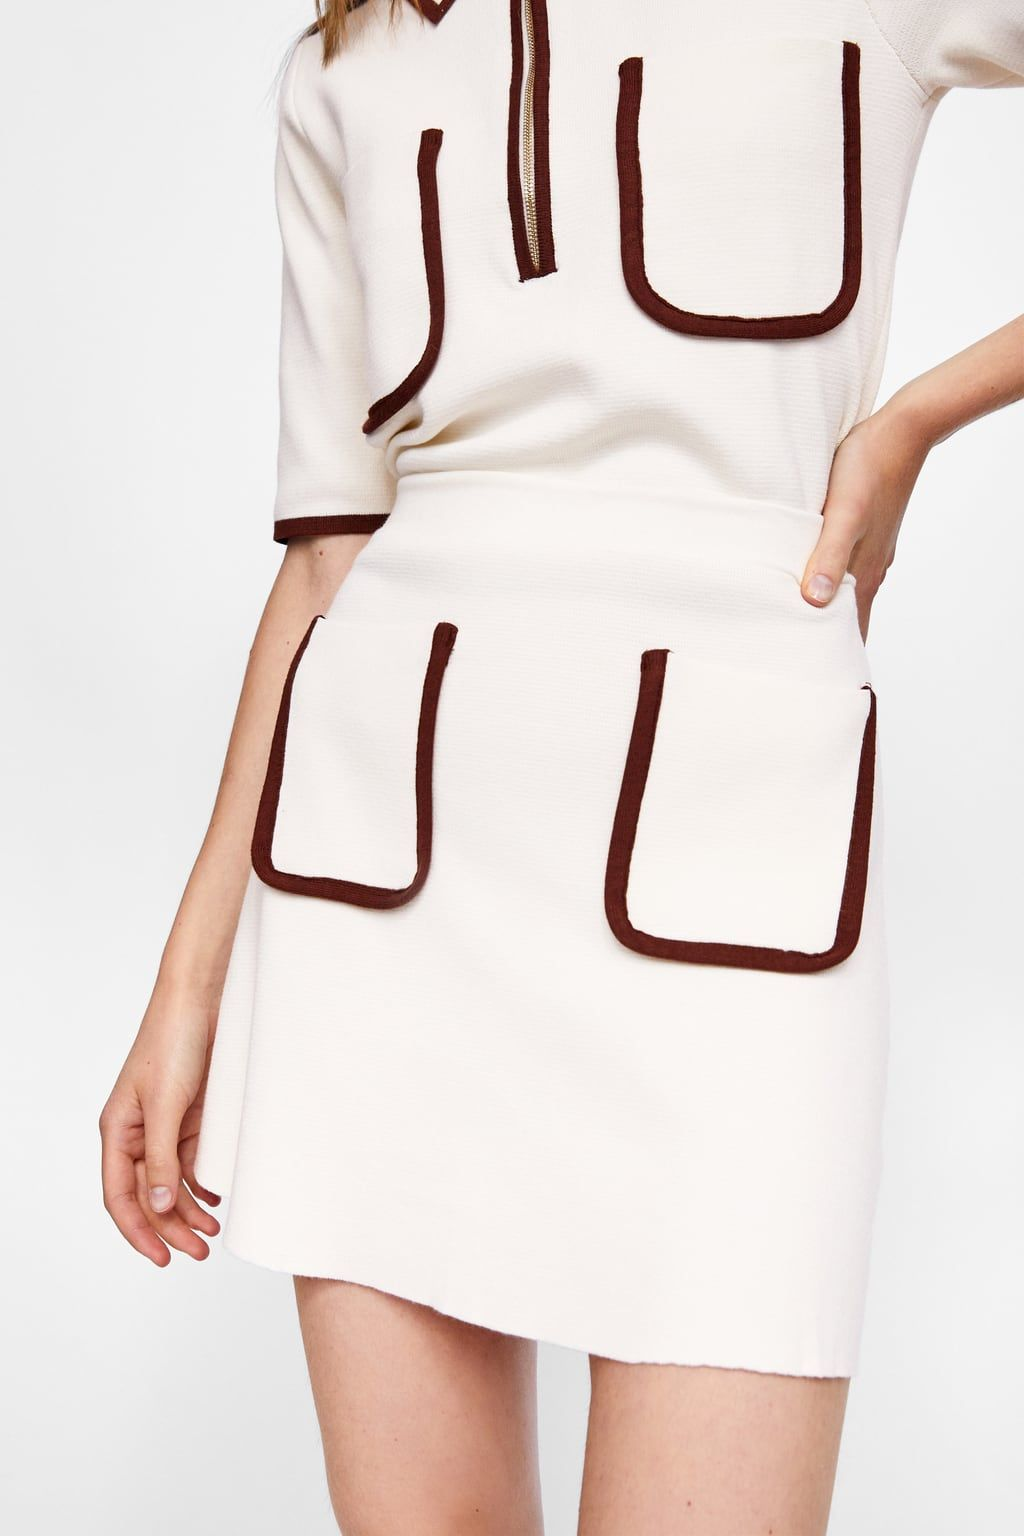 3bf5e73f46 Image 2 of SKIRT WITH CONTRASTING PIPING from Zara   Woman Outfit ...